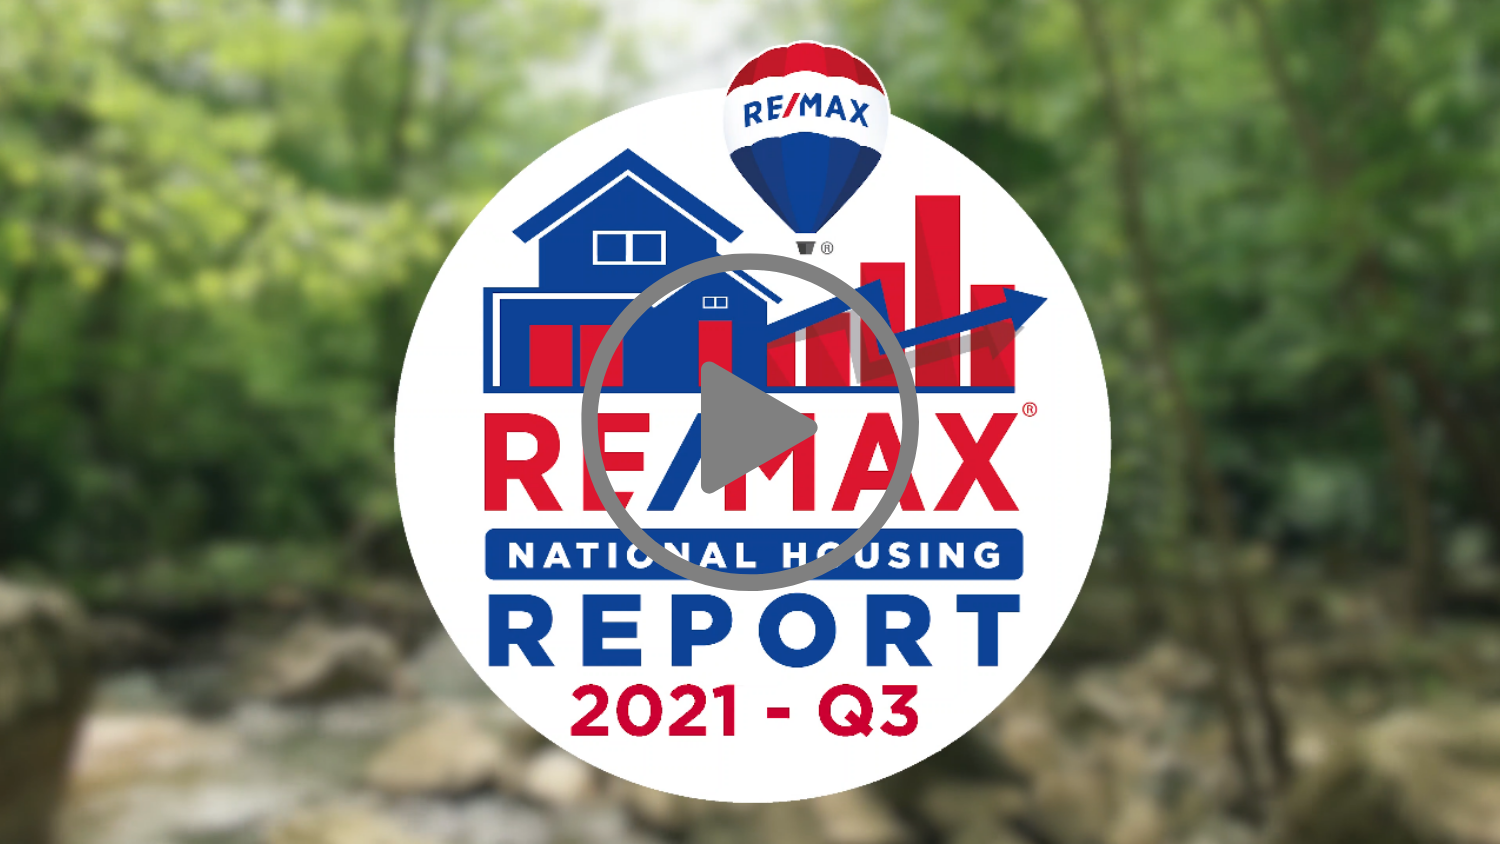 RE/MAX NATIONAL HOUSING REPORT Q3 2021